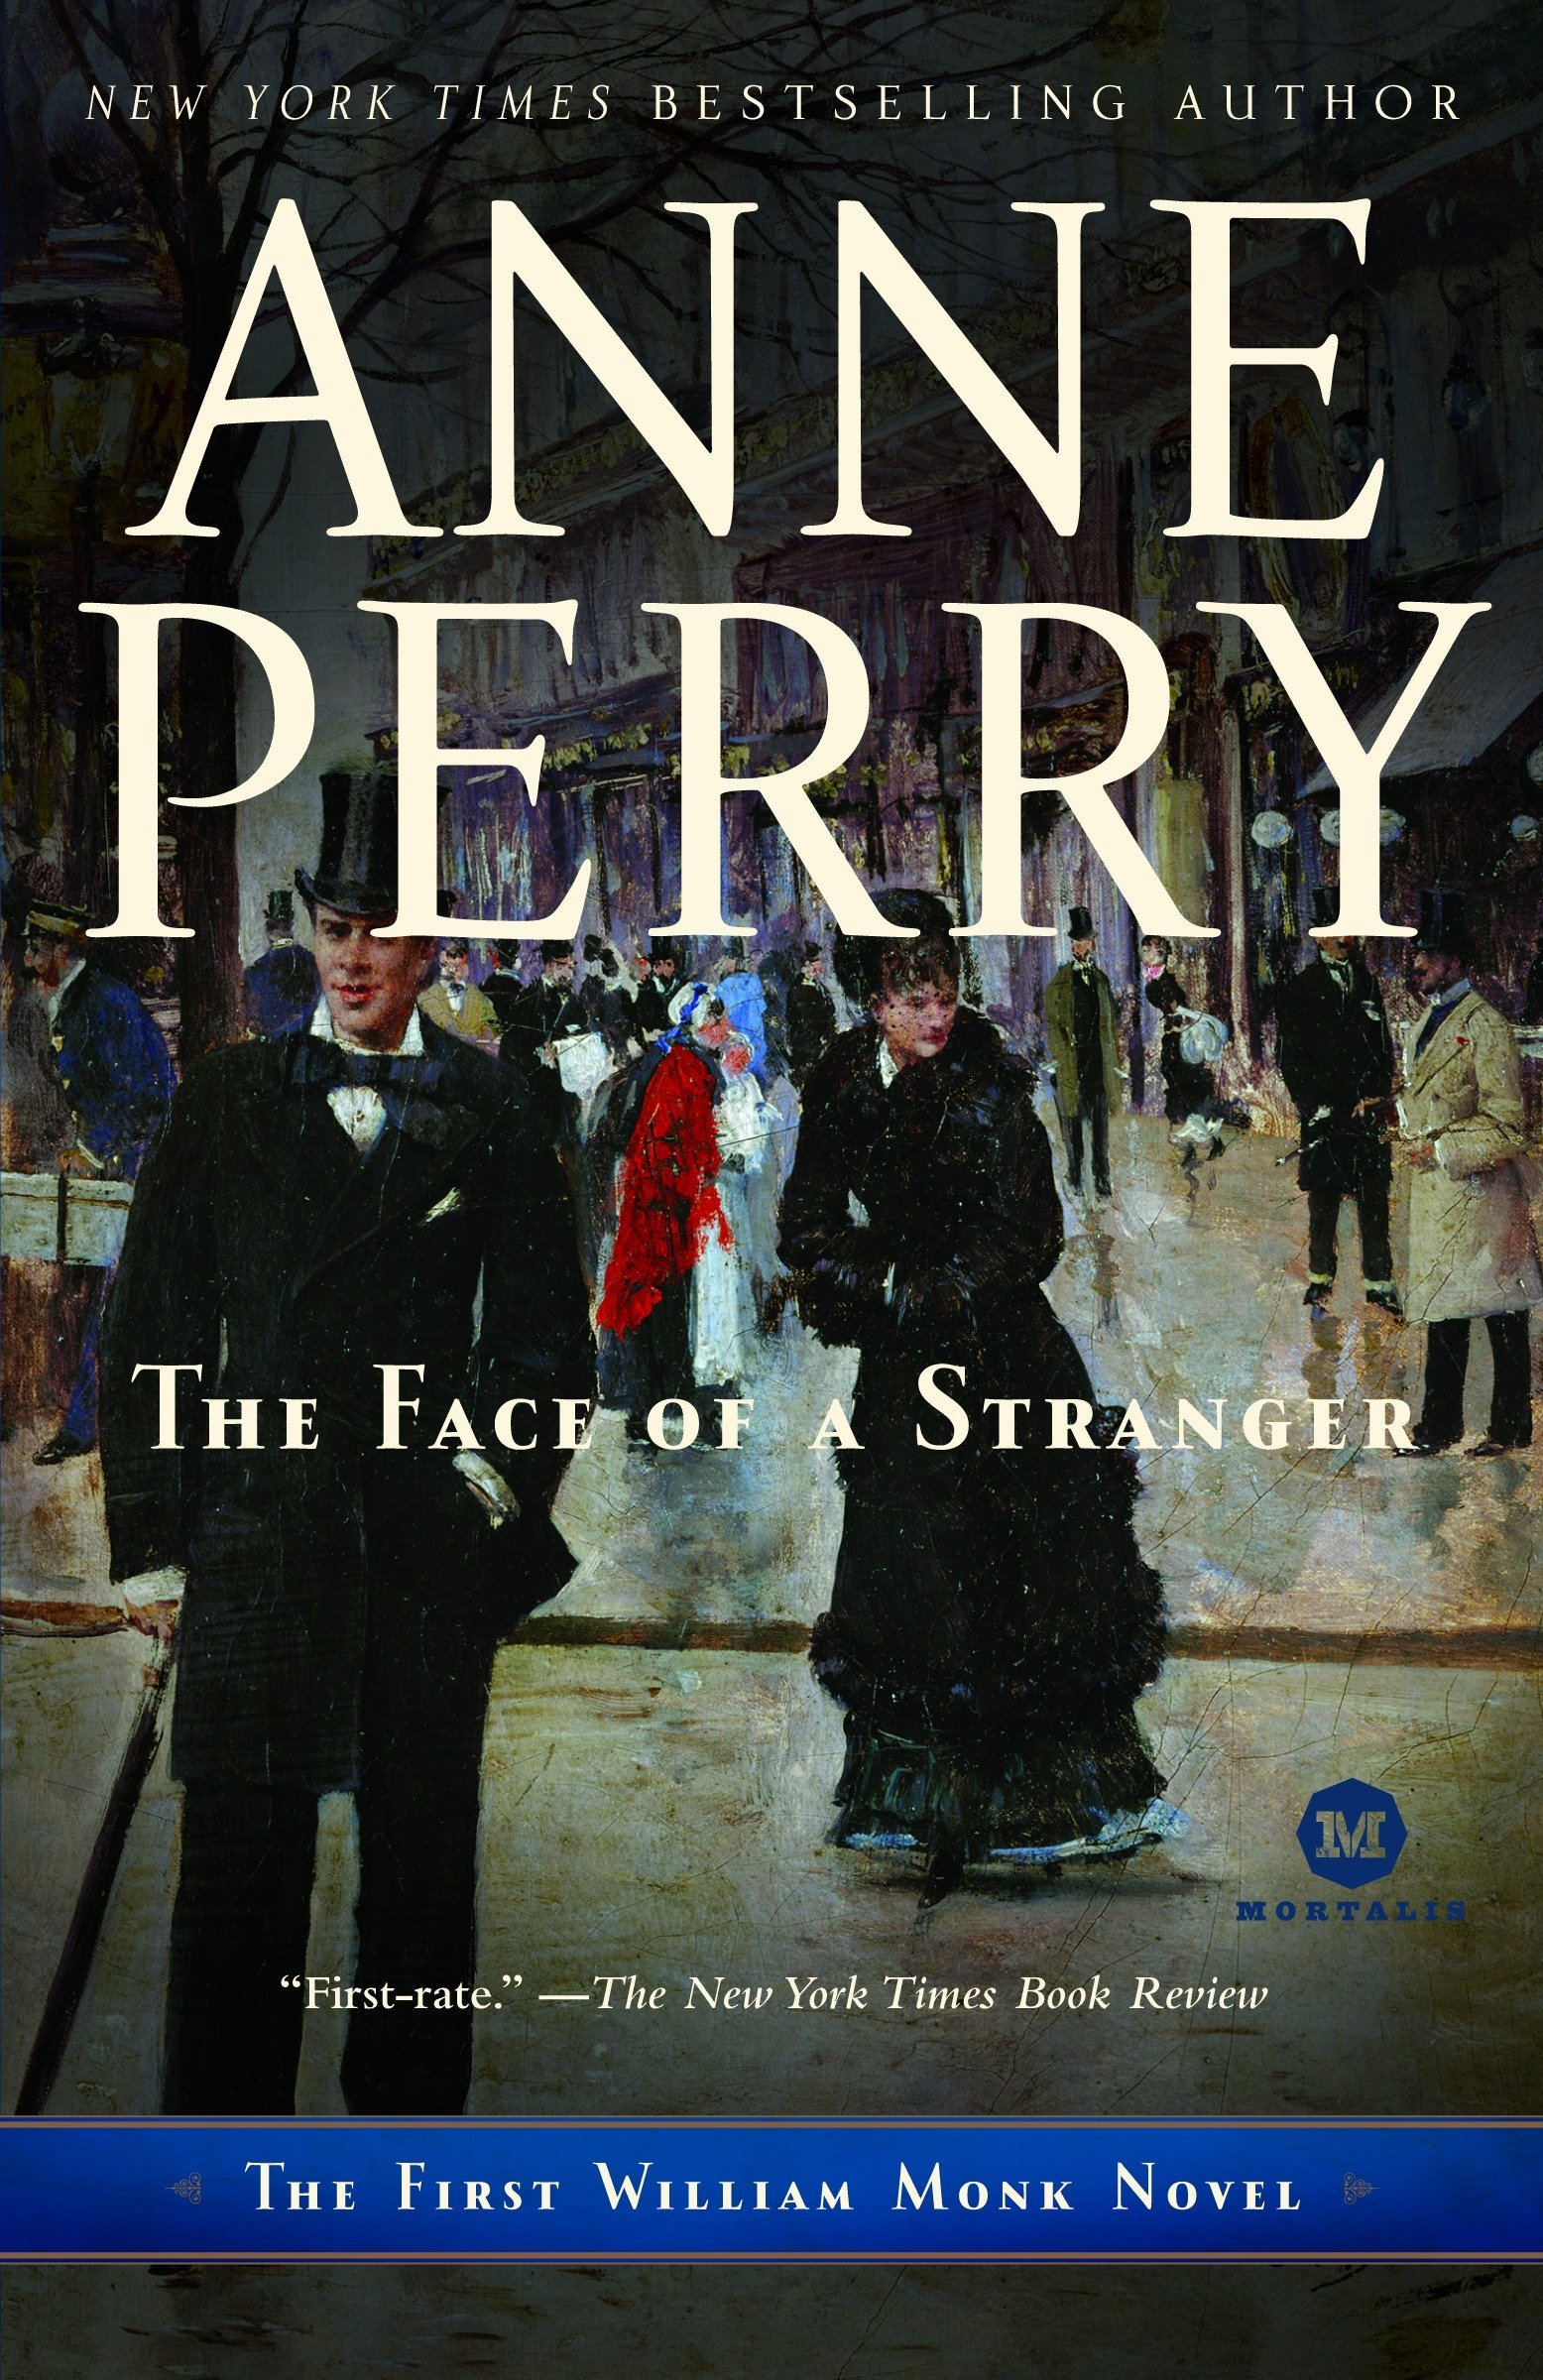 Read Online The Face of a Stranger: The First William Monk Novel PDF